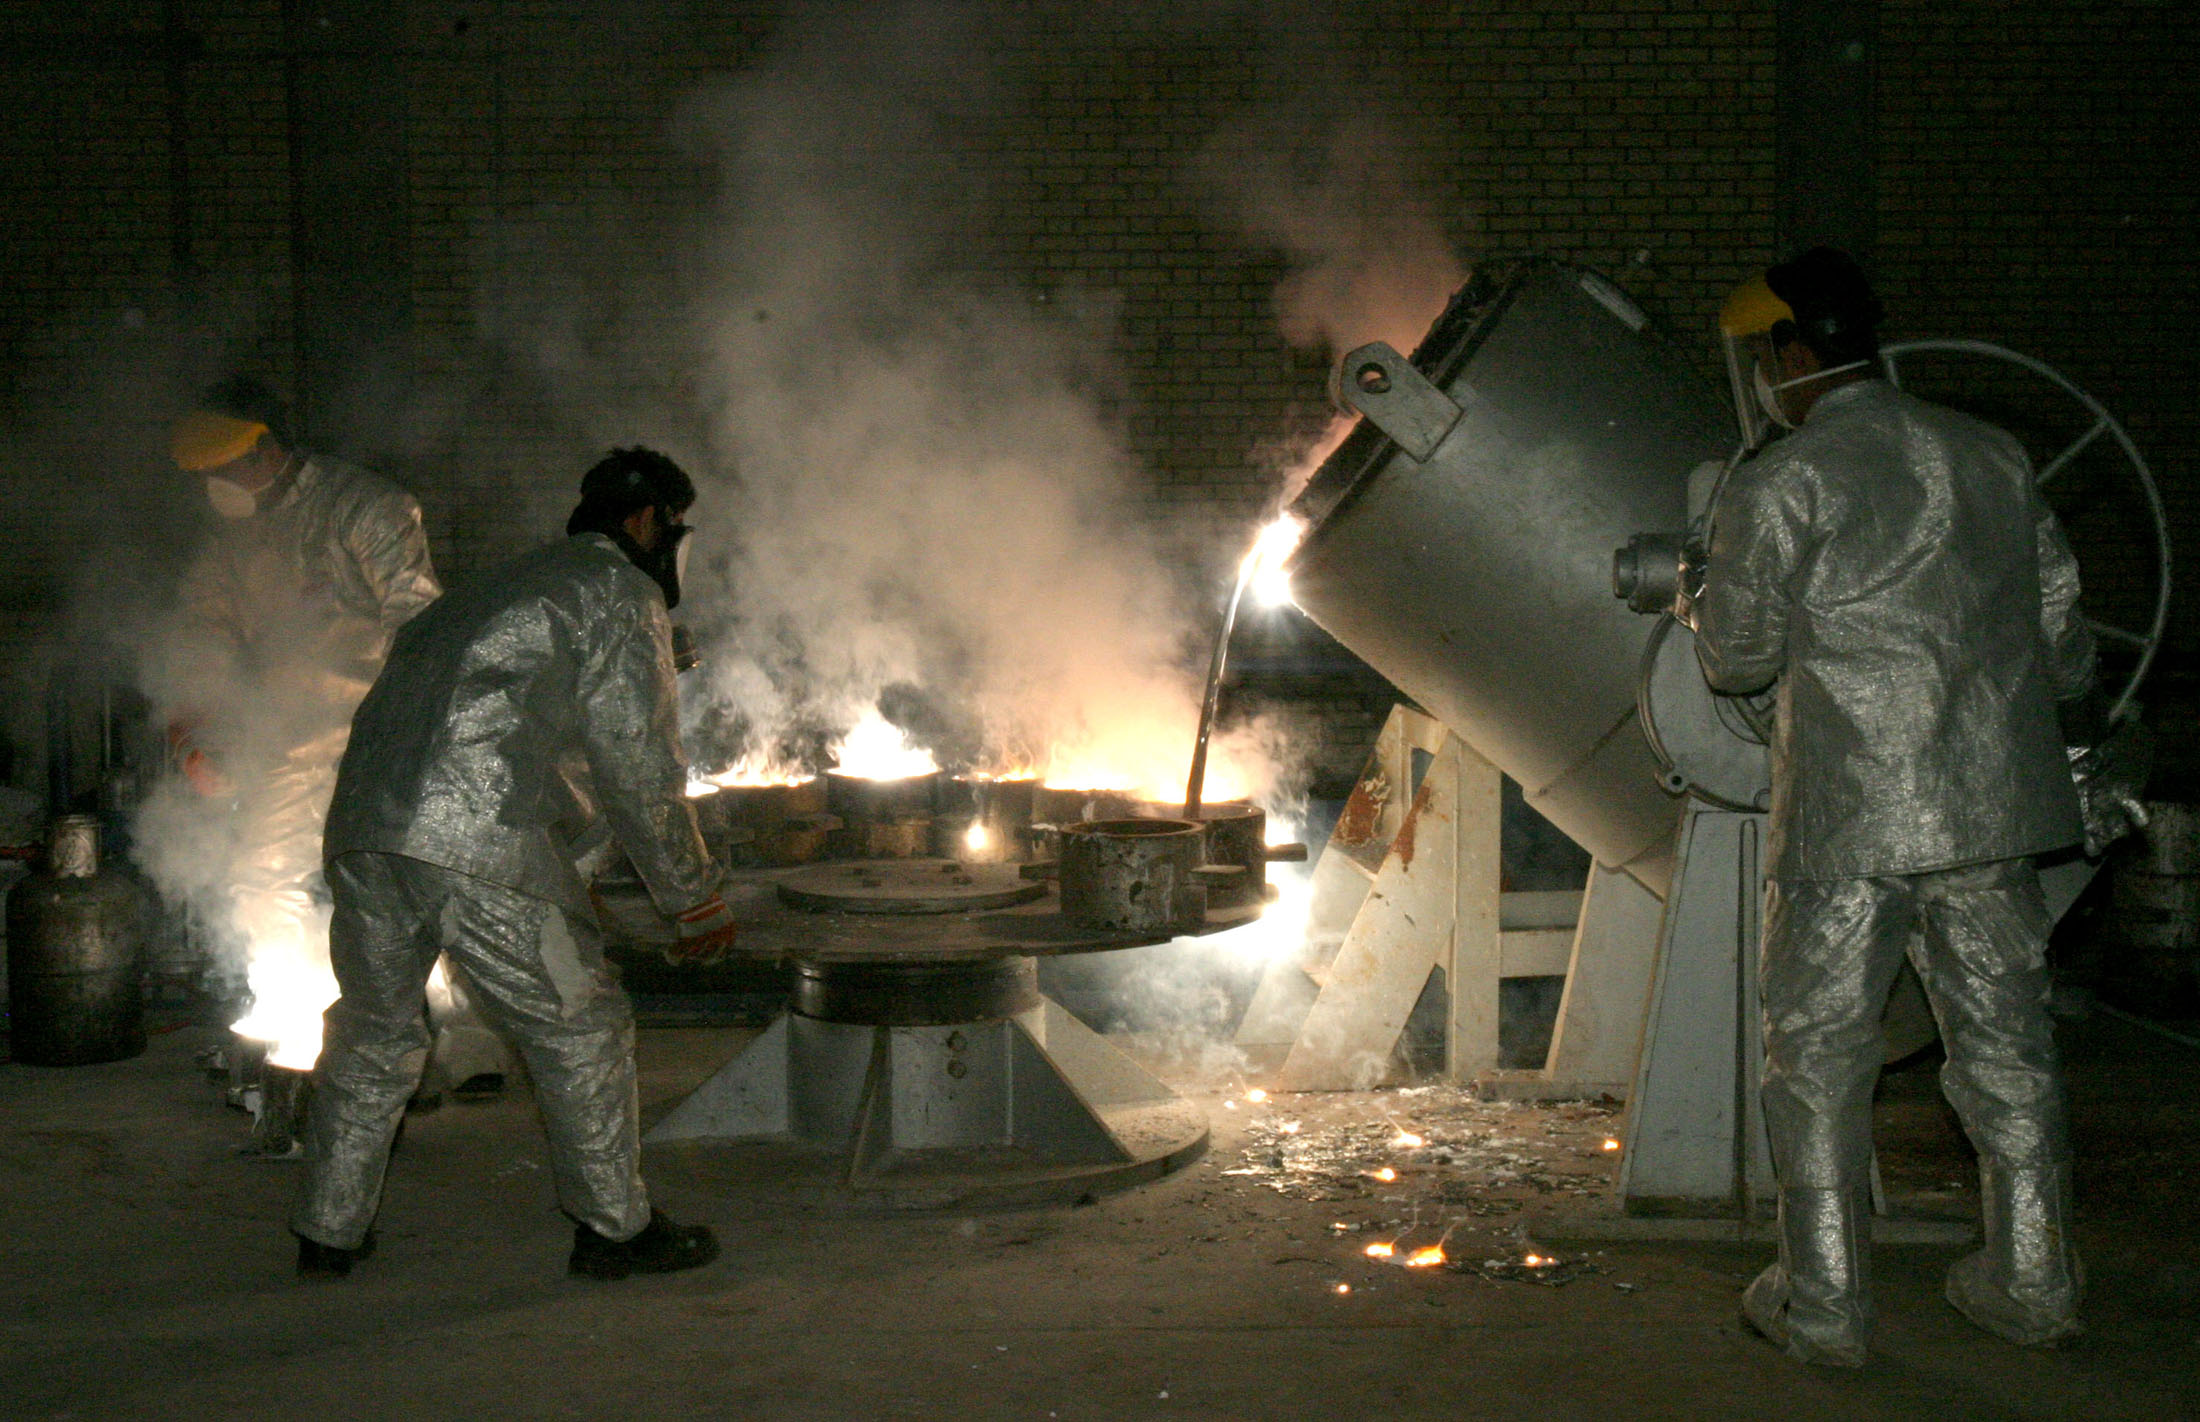 Iranians working with nuclear material